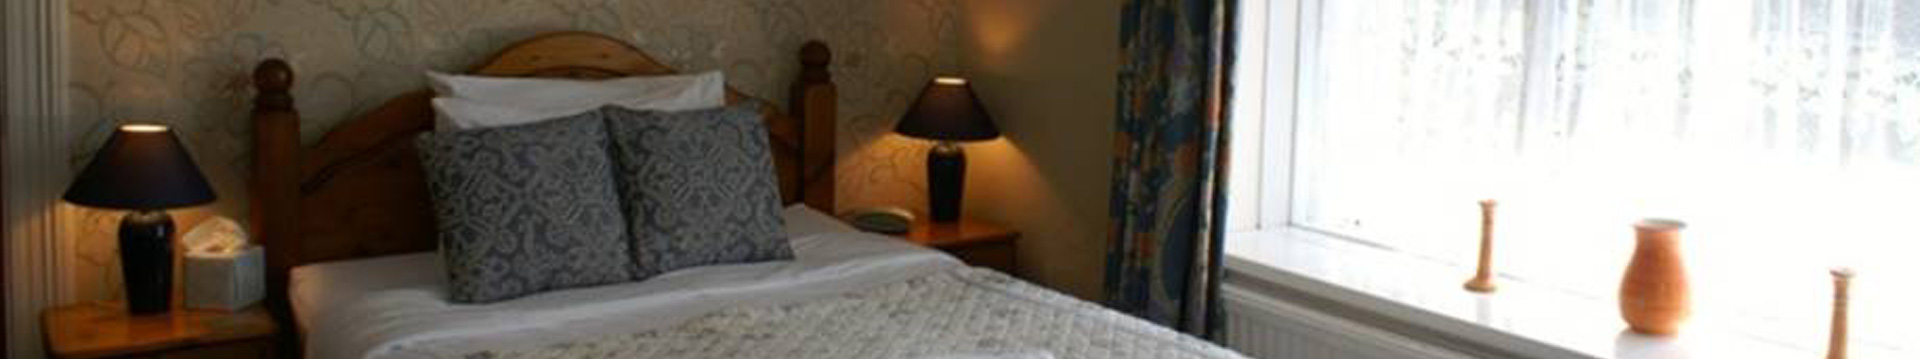 B&B Accommodation Exmoor North Devon